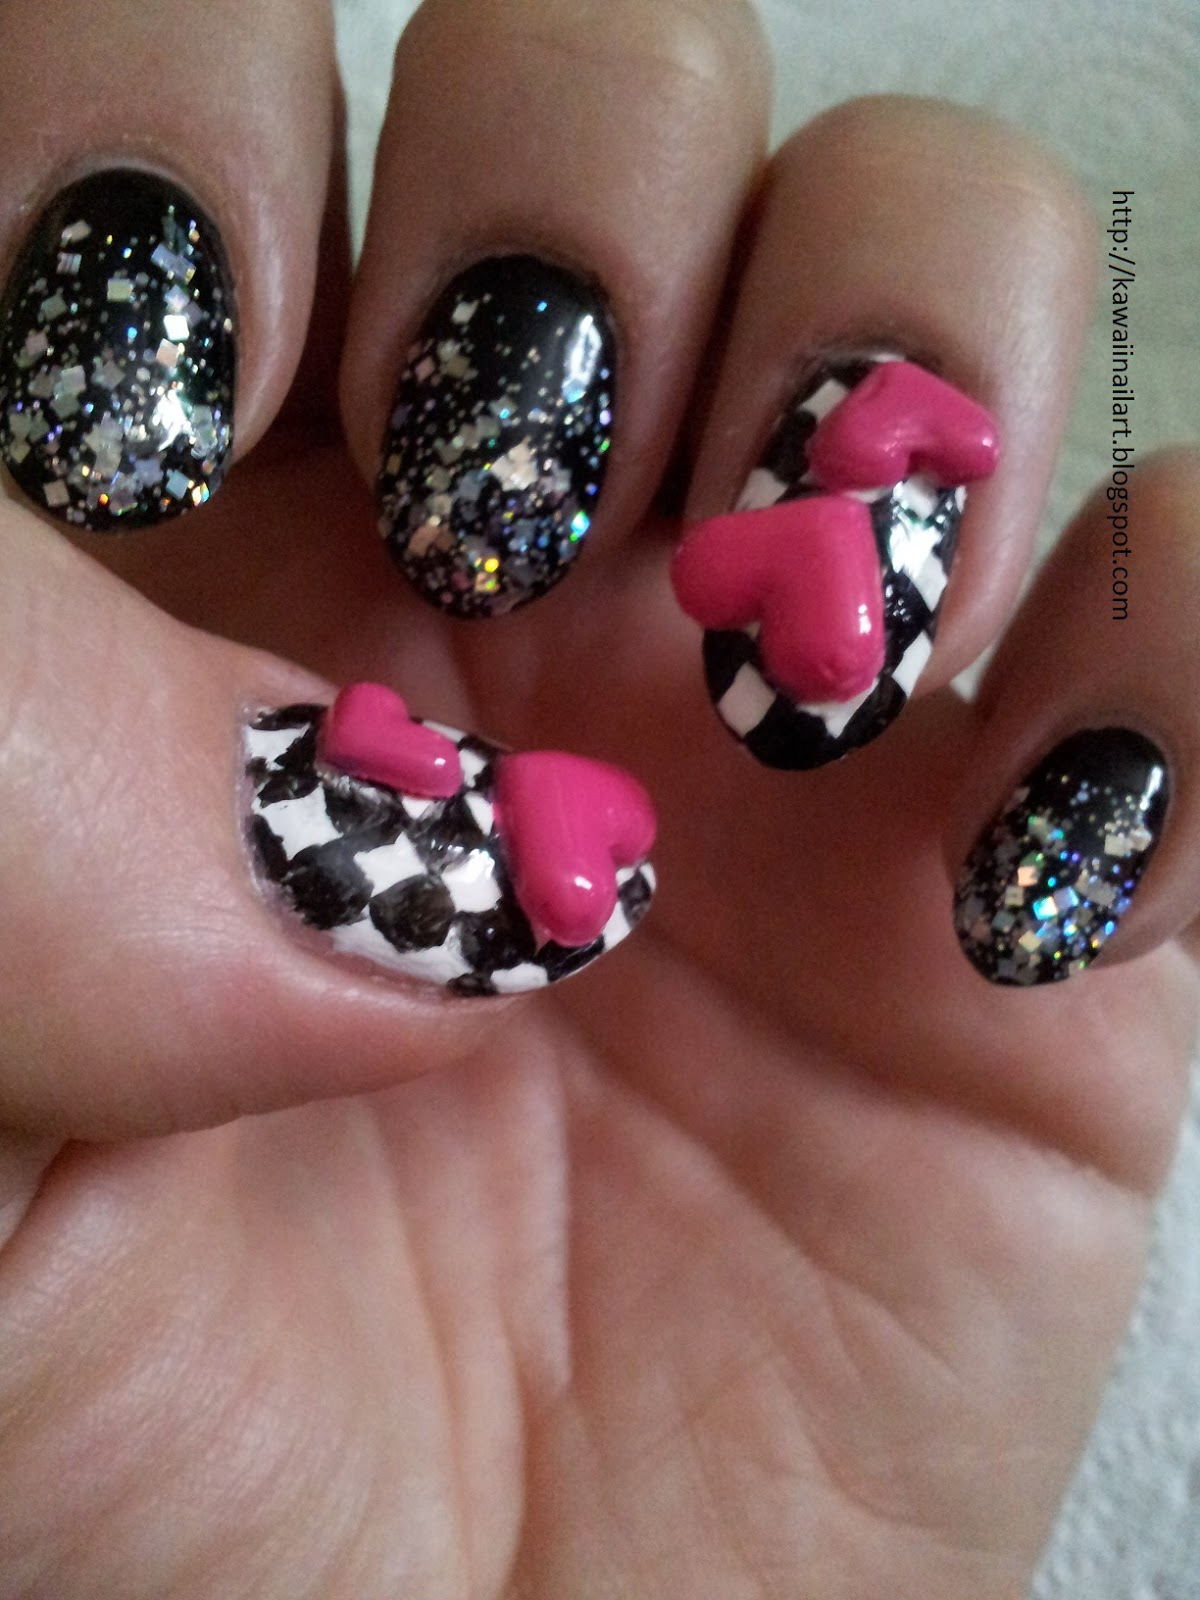 3d+nail+art+pink+hearts+black+and+white+chequer+board+nail+technician